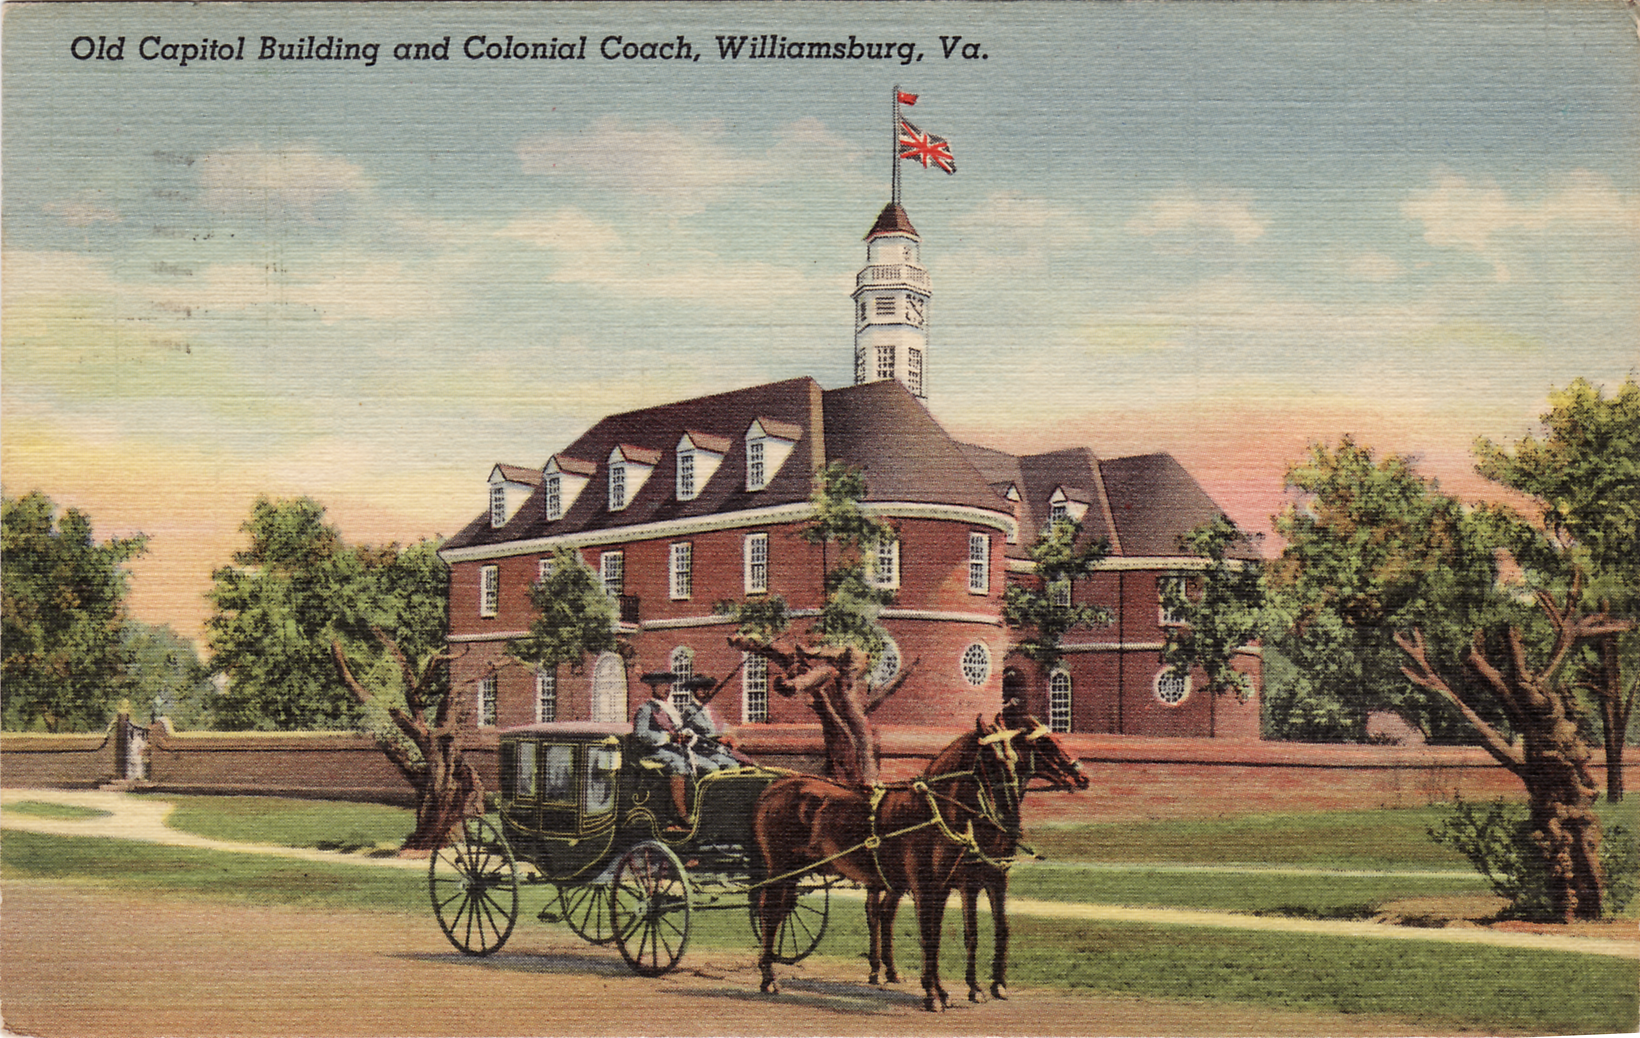 Postcard showing the Capitol Building in Williamsburg, Virginia.